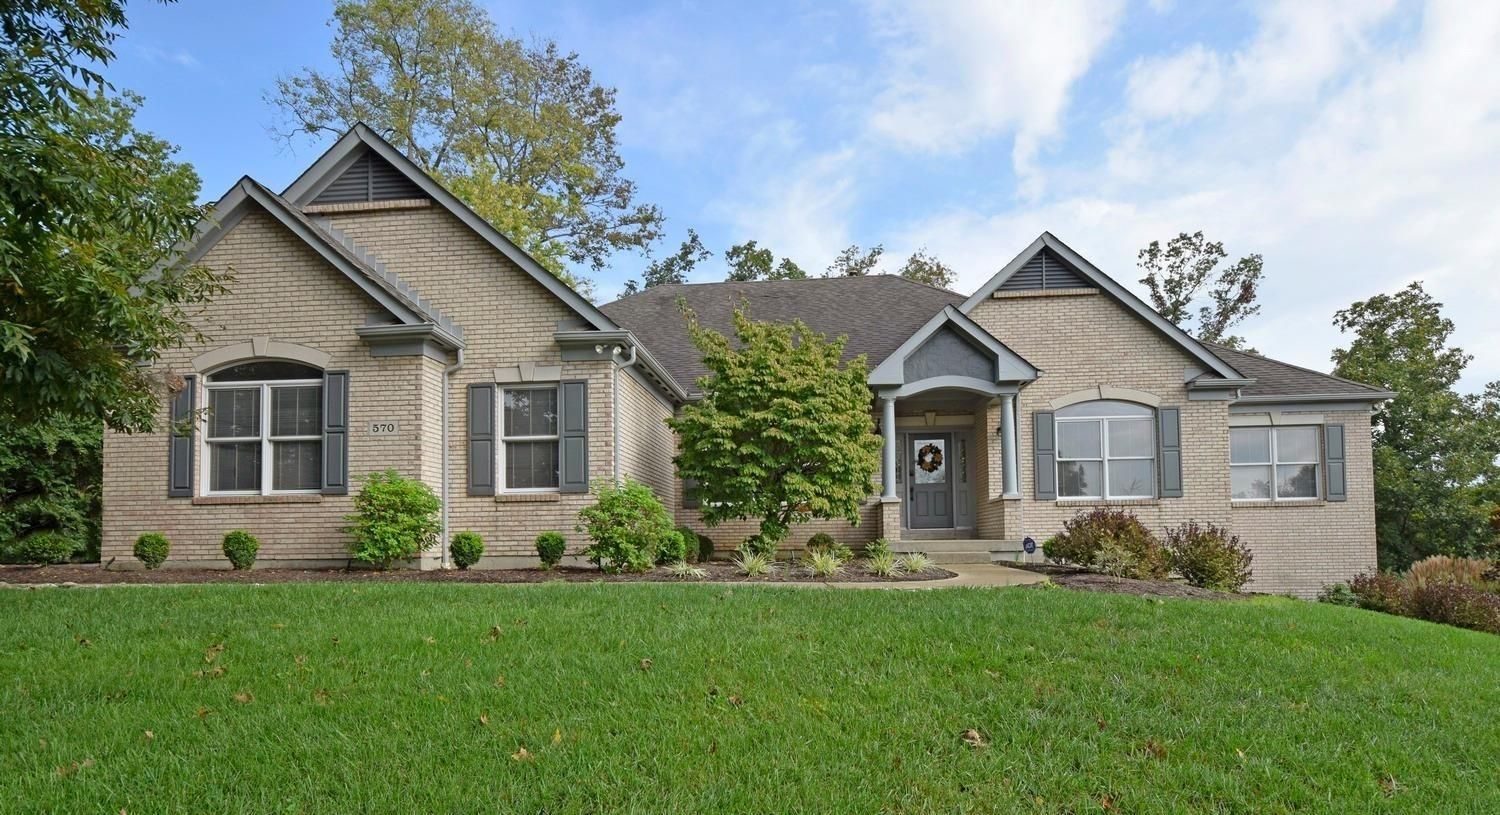 Property for sale at 570 Ridgestone Drive, Anderson Twp,  OH 45255